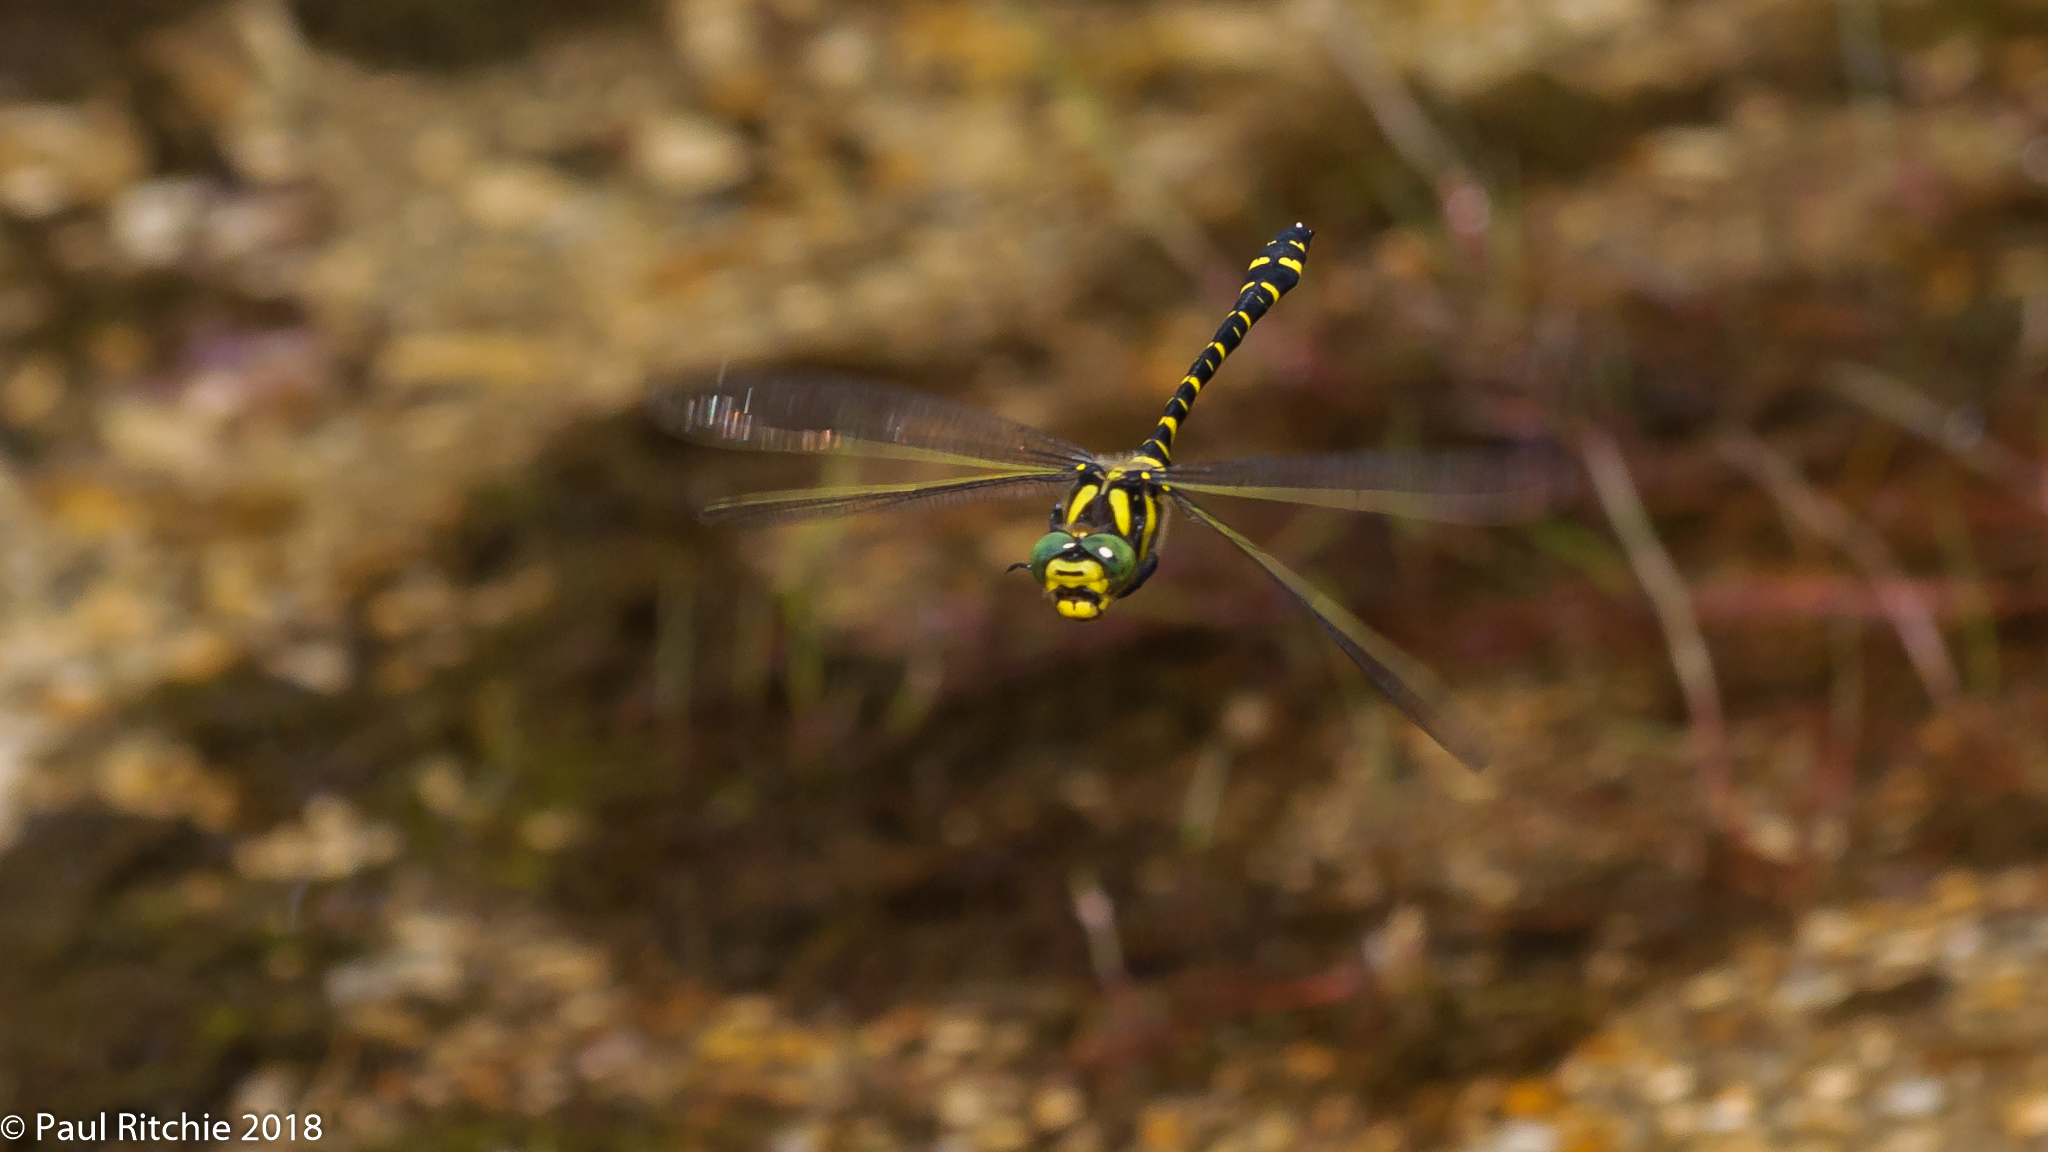 Golden-ringed Dragonfly (Cordulegaster boltonii) - male on patrol